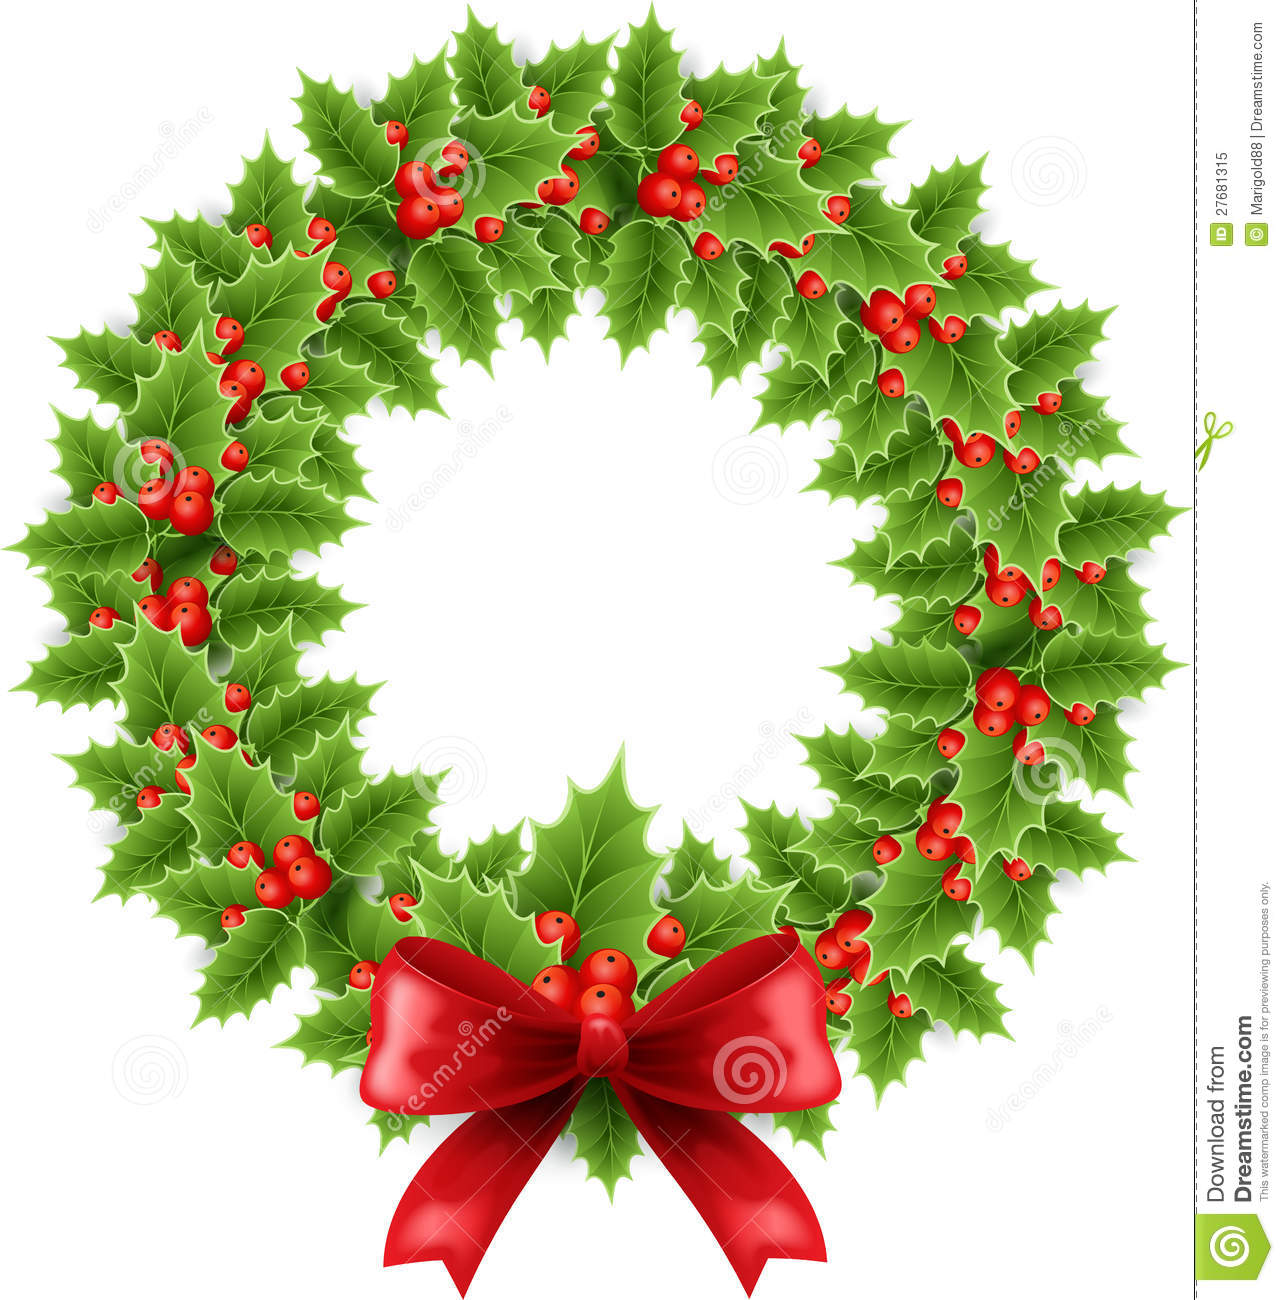 Christmas Wreath With Bow Royalty Free Stock Photo - Image: 27681315